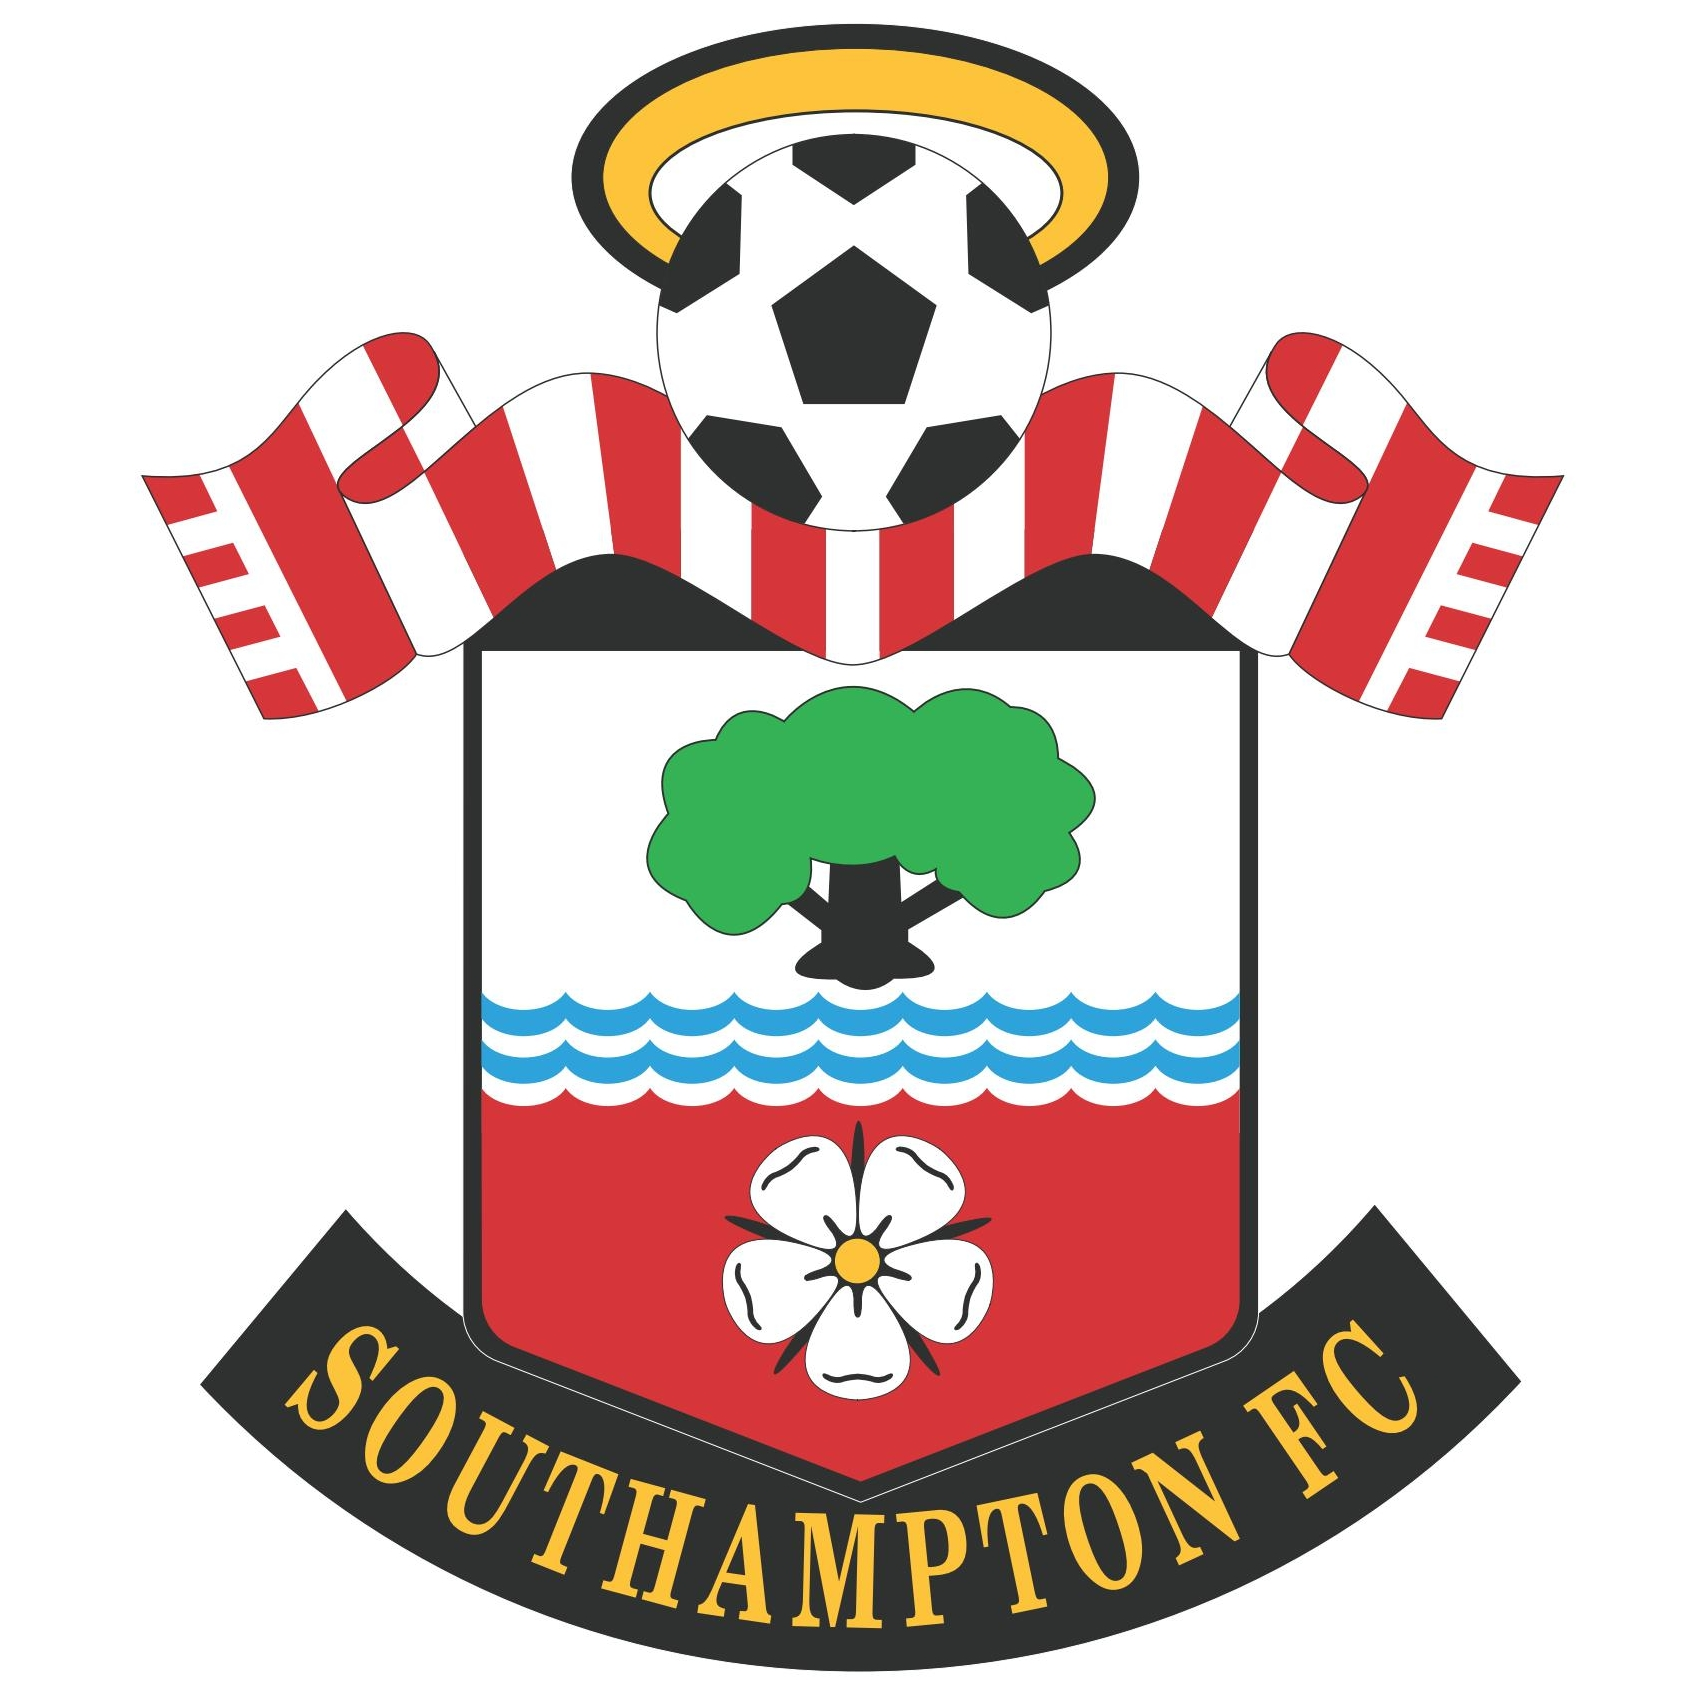 Football Club Clipart.